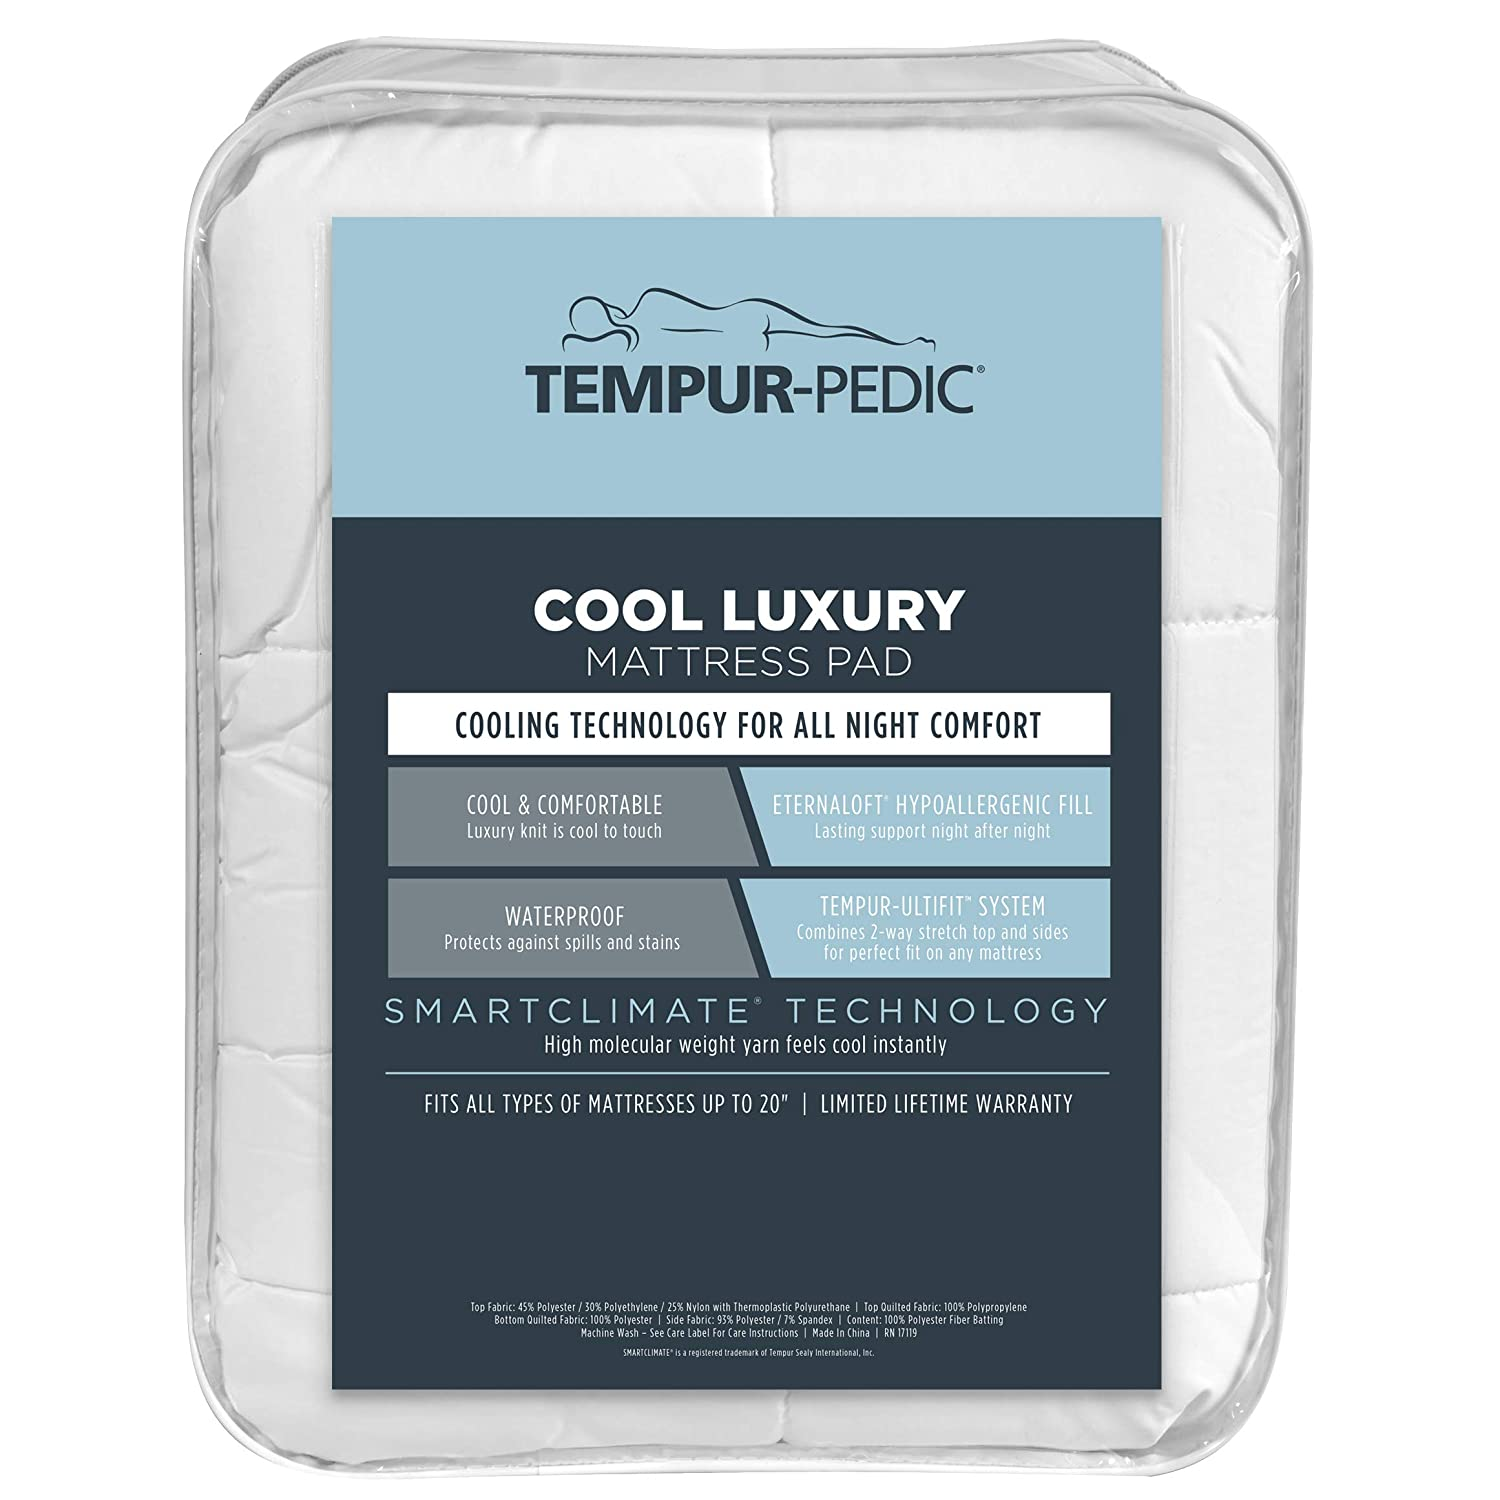 Tempur-Pedic Performance Luxury Fitted Mattress Pad – Cool, Comfortable and Hypoallergenic